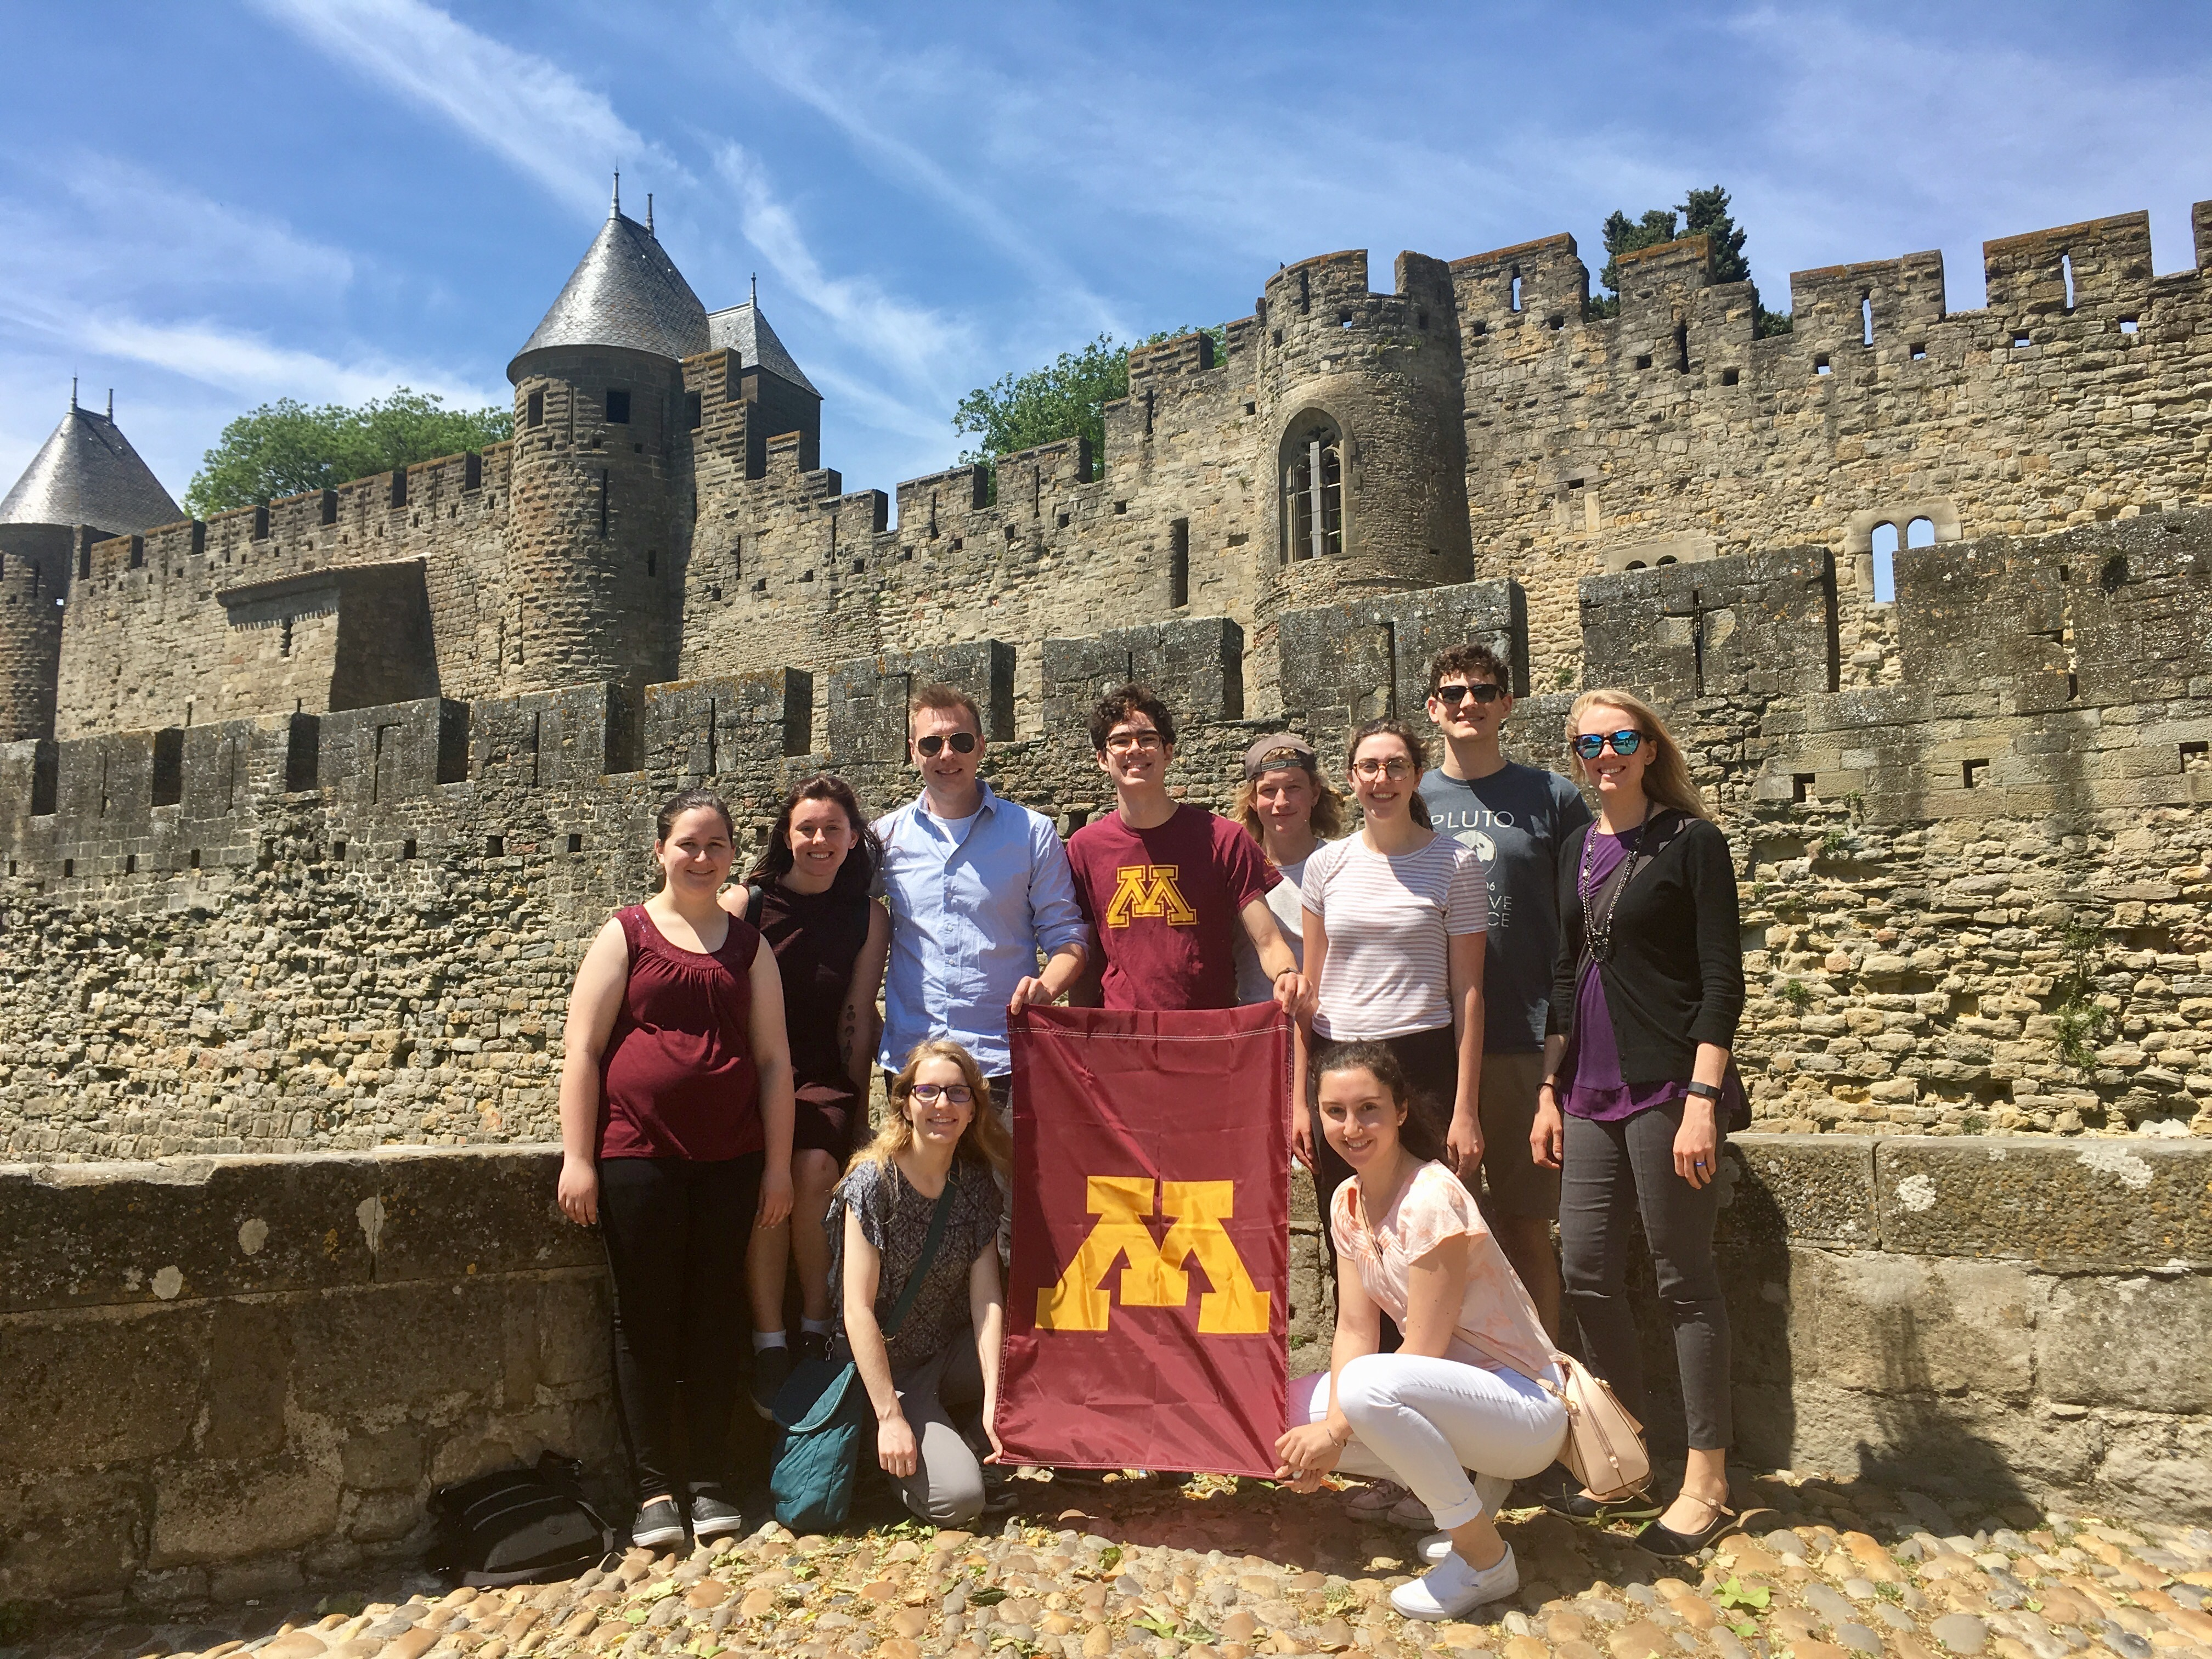 Students with U of M flag in front of castle ruins in Carcassonne, France